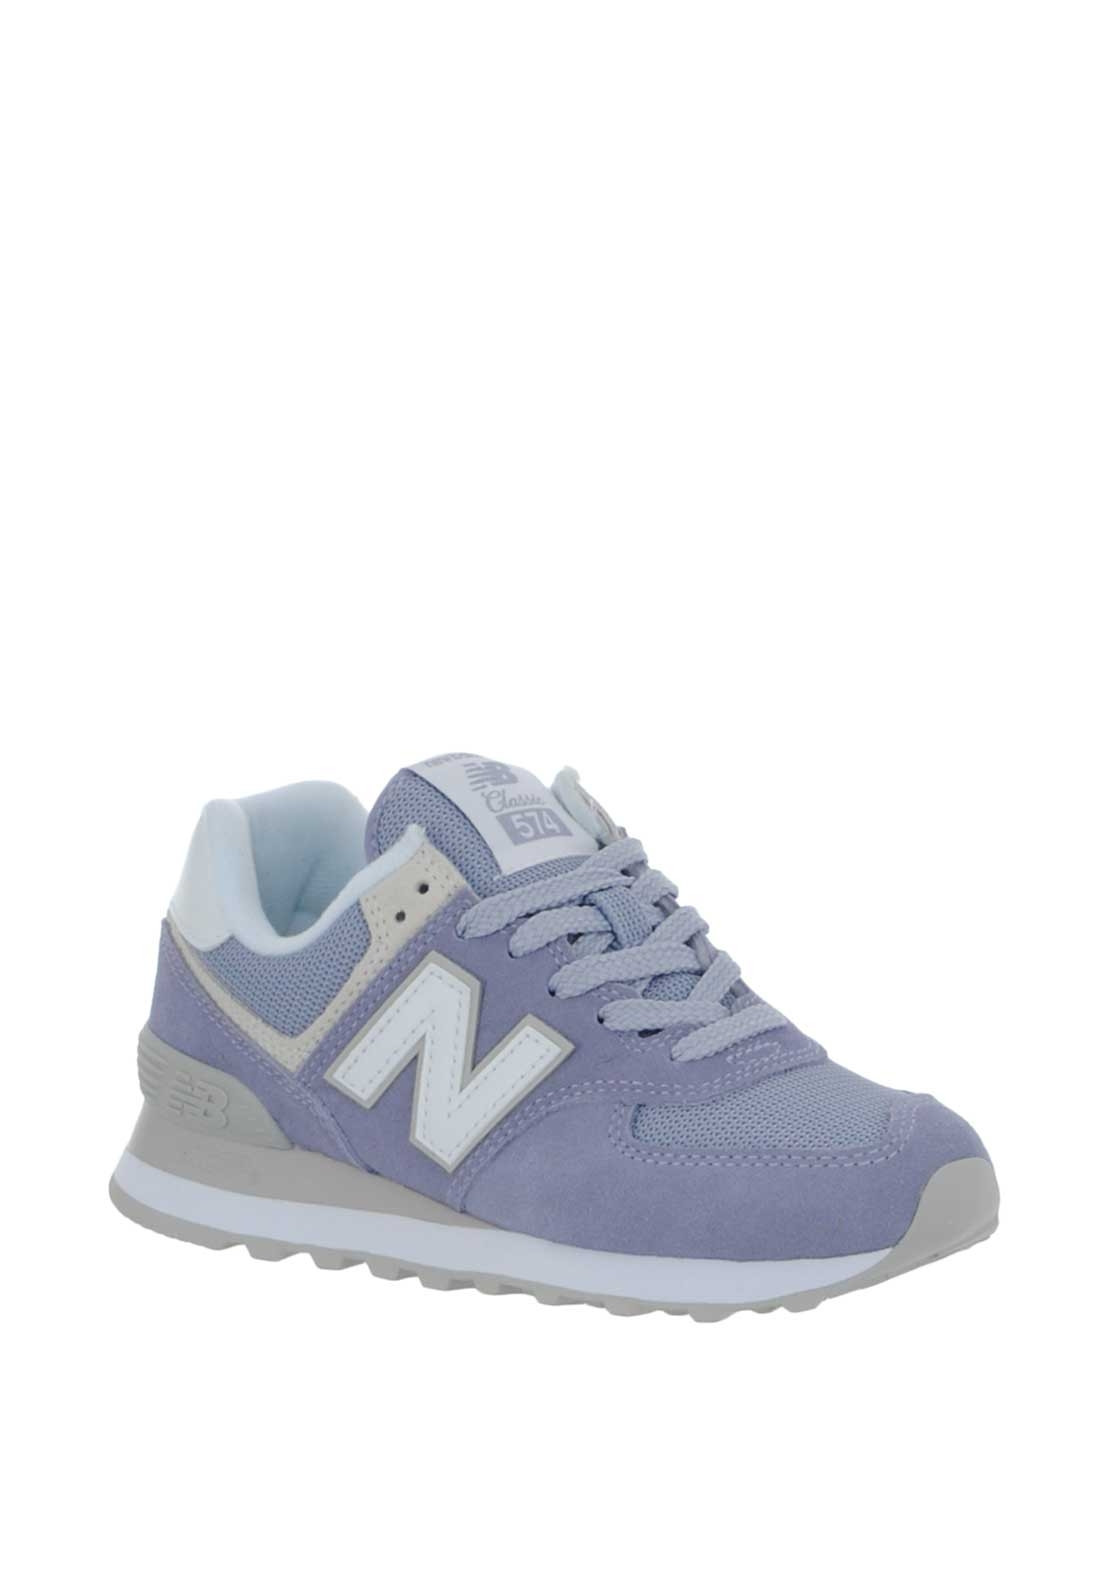 sports shoes 5f615 18490 New Balance Womens 574 Suede Trainers, Lilac